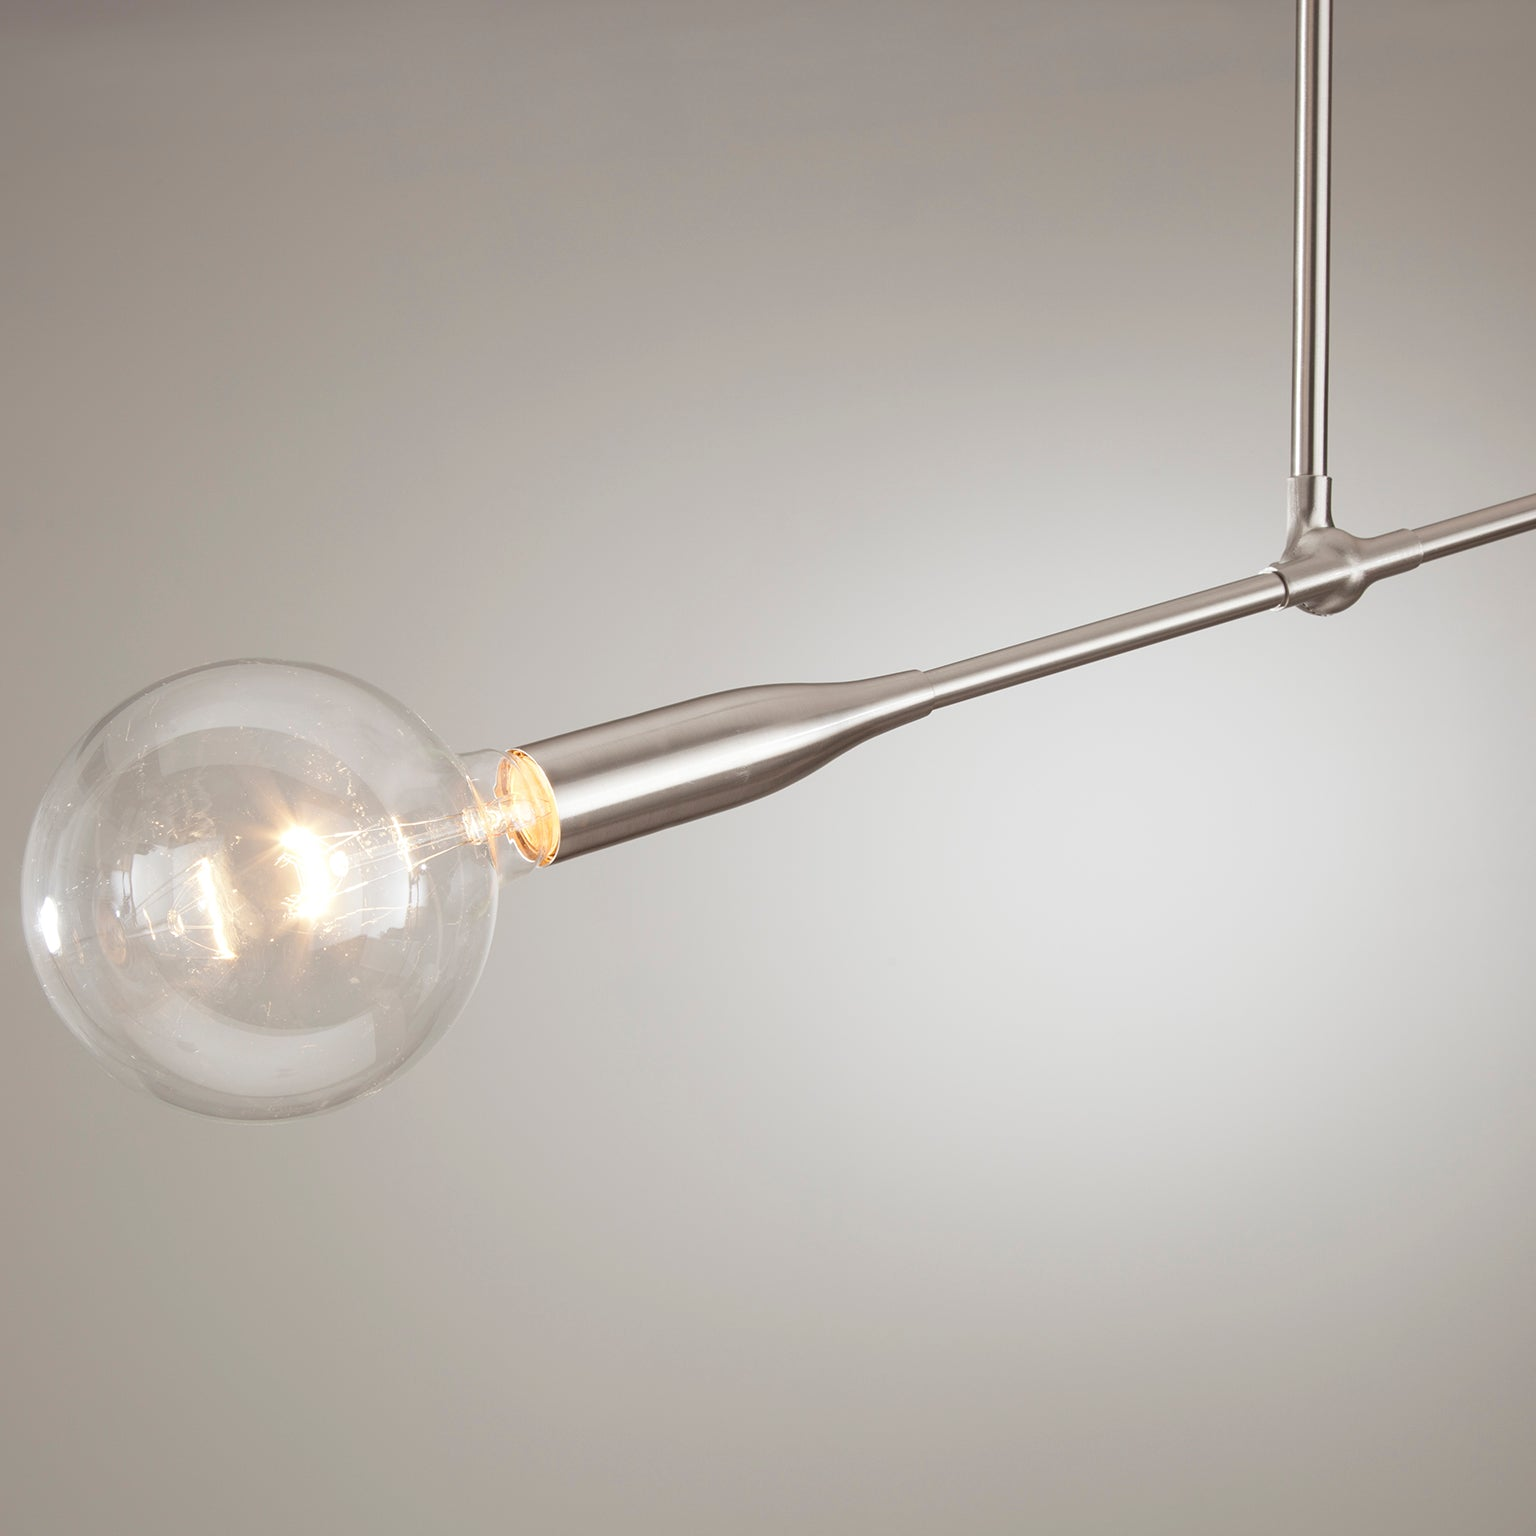 Close up view of Studio DUNN's Sorenthia Light with a globe bulb and a grey wall background